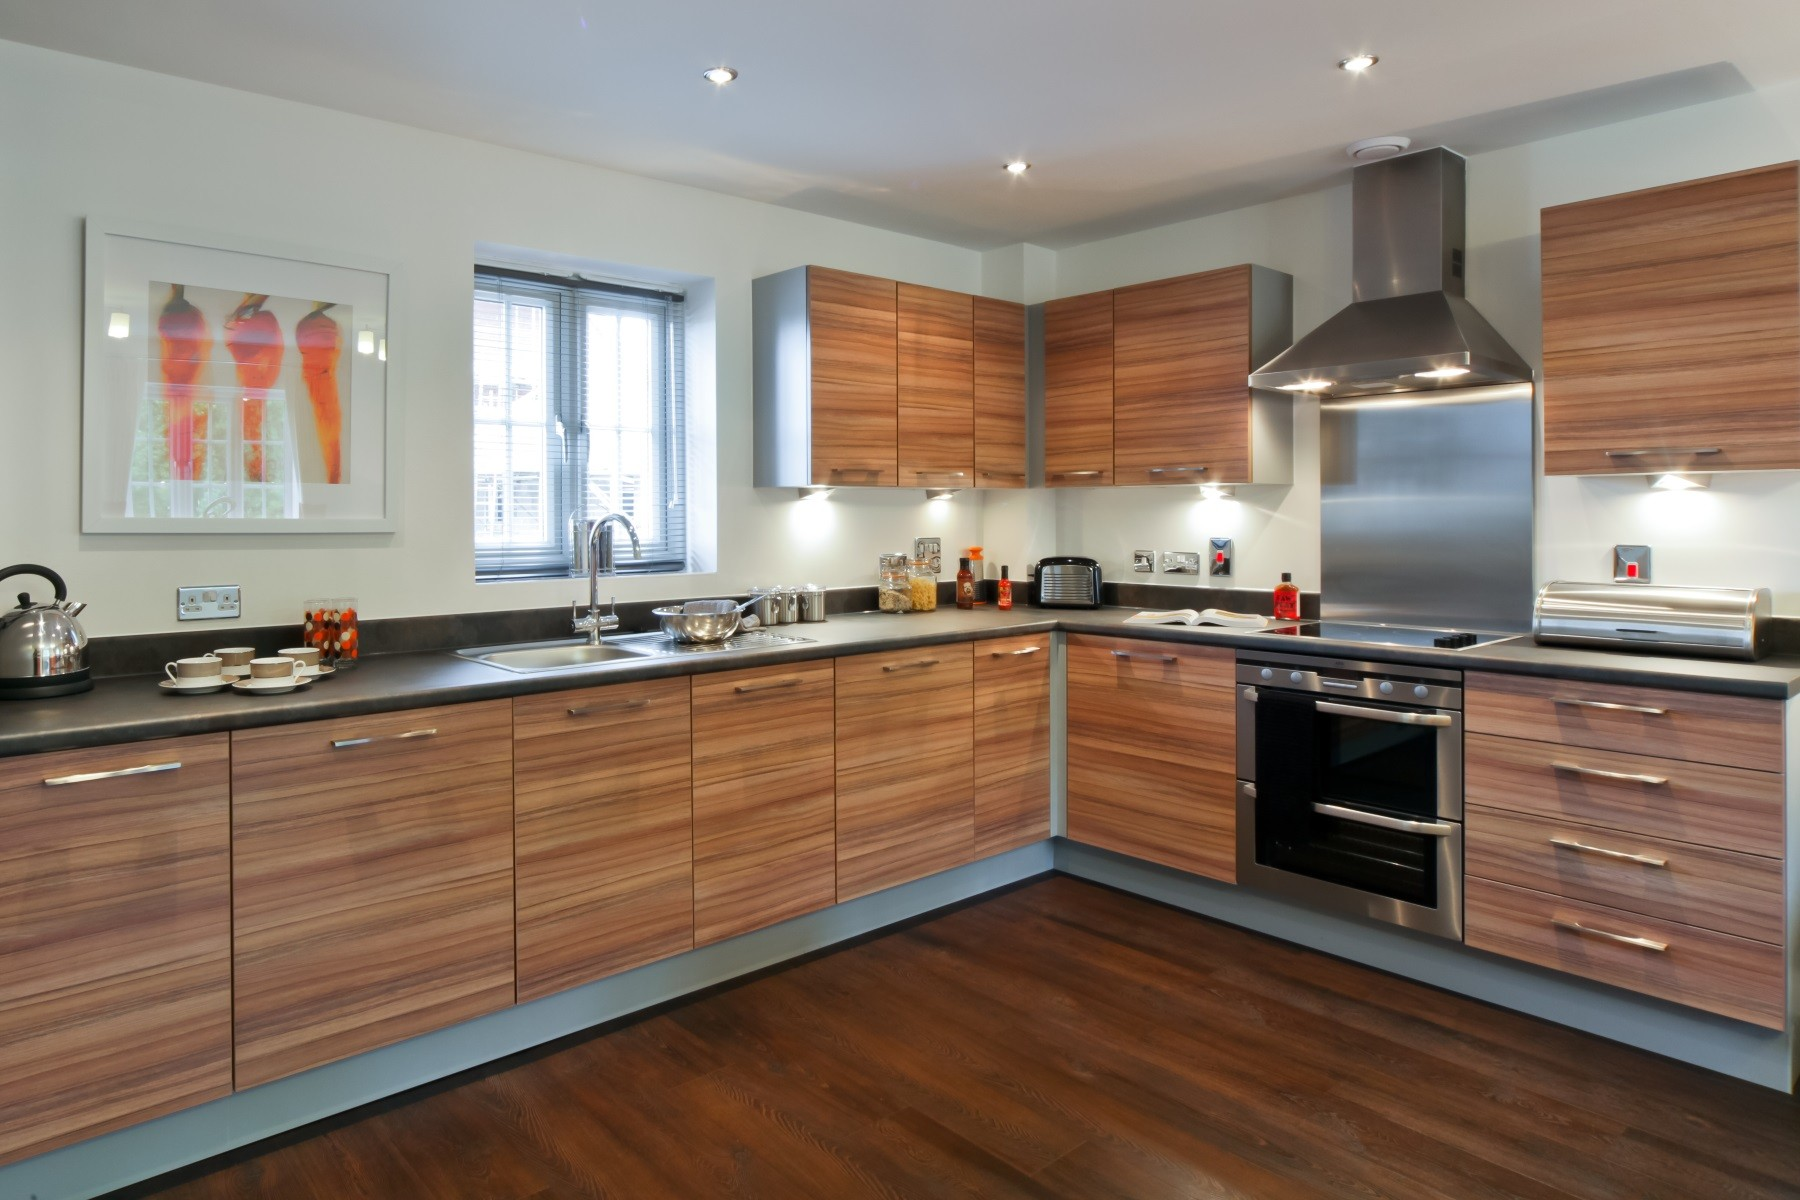 TW Exeter - Sherford - Aspen example kitchen